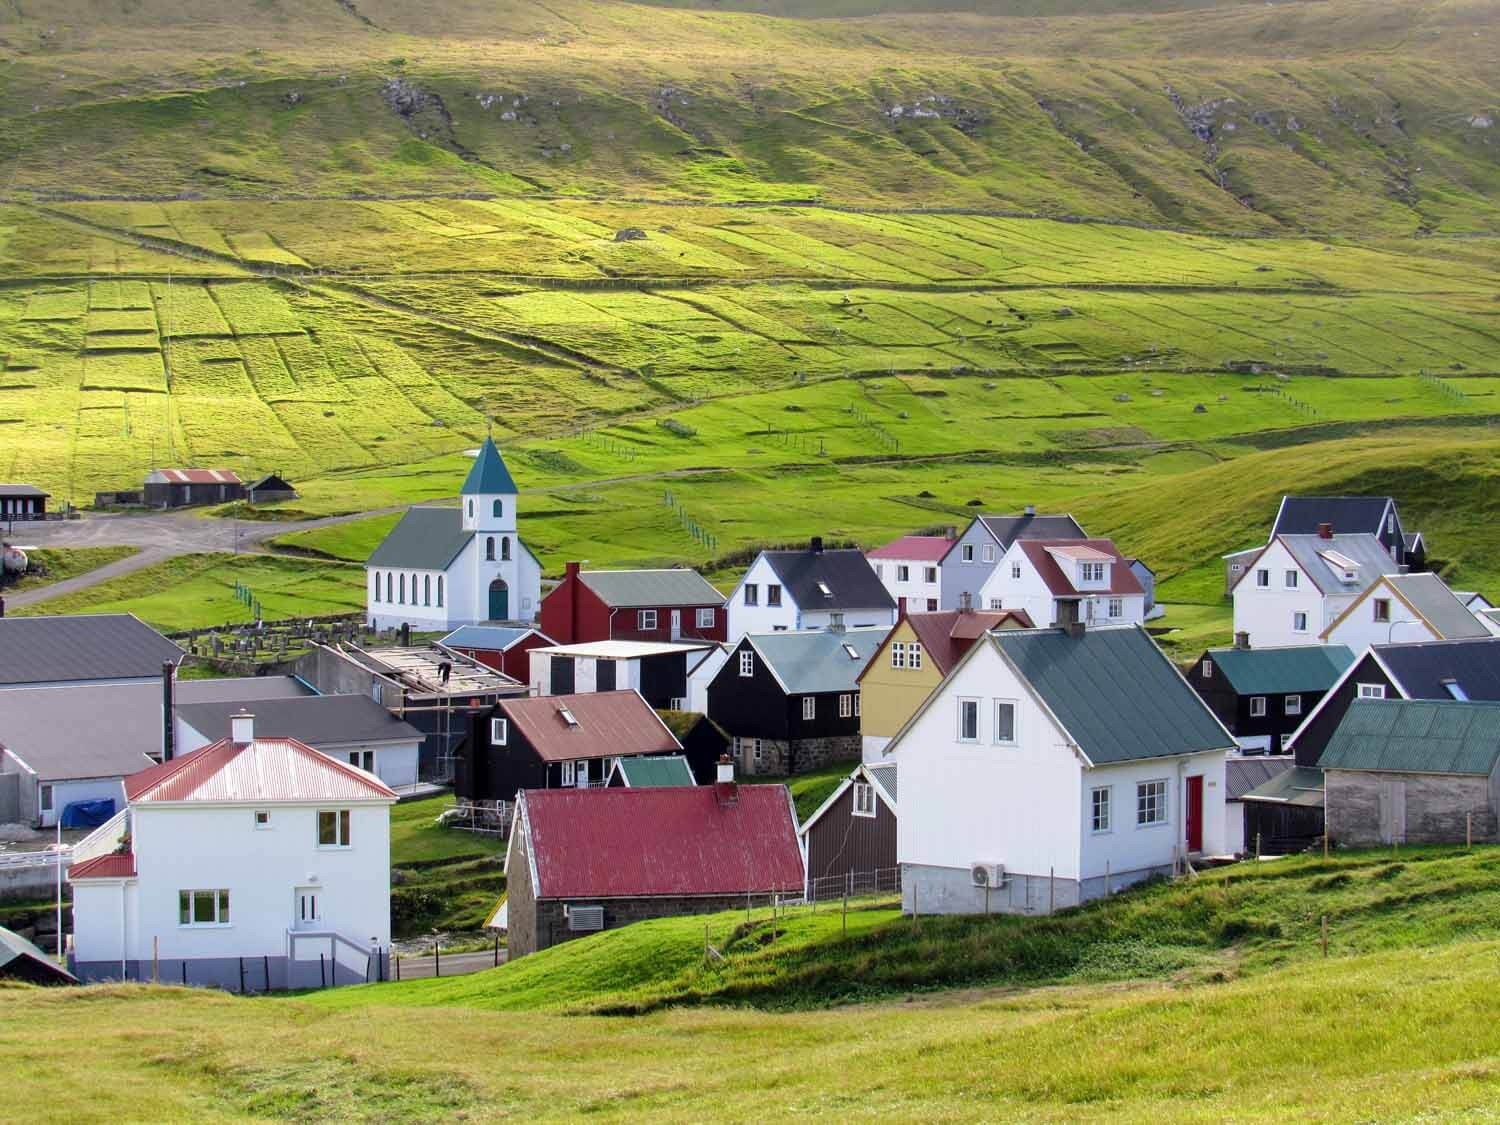 denmark-faroe-islands-eysturoy-eidi-village-green-fields.jpg